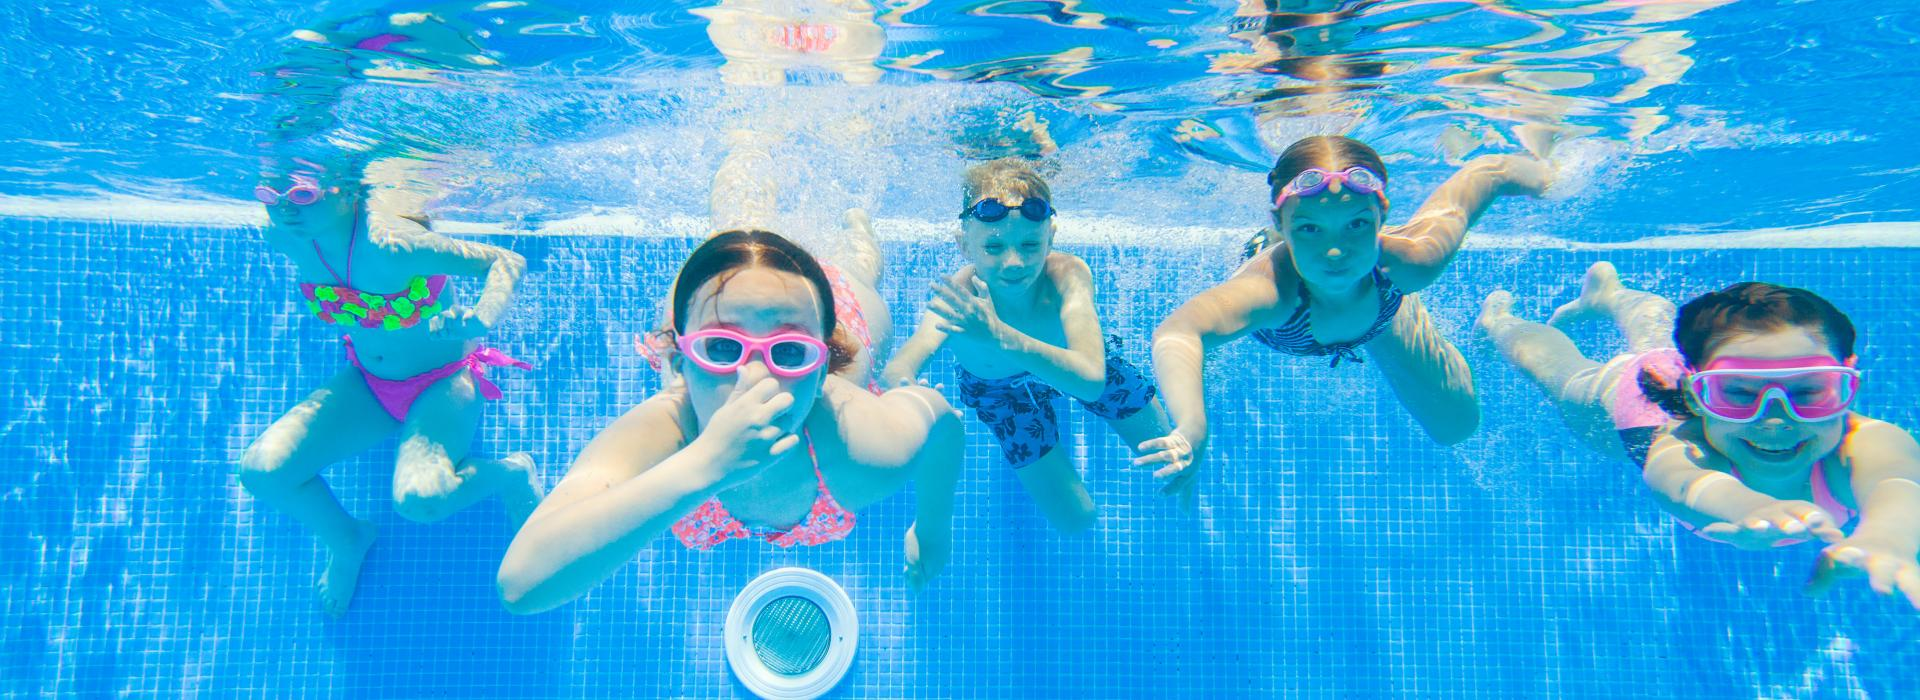 WNC swim lessons: When, and why, should children learn to